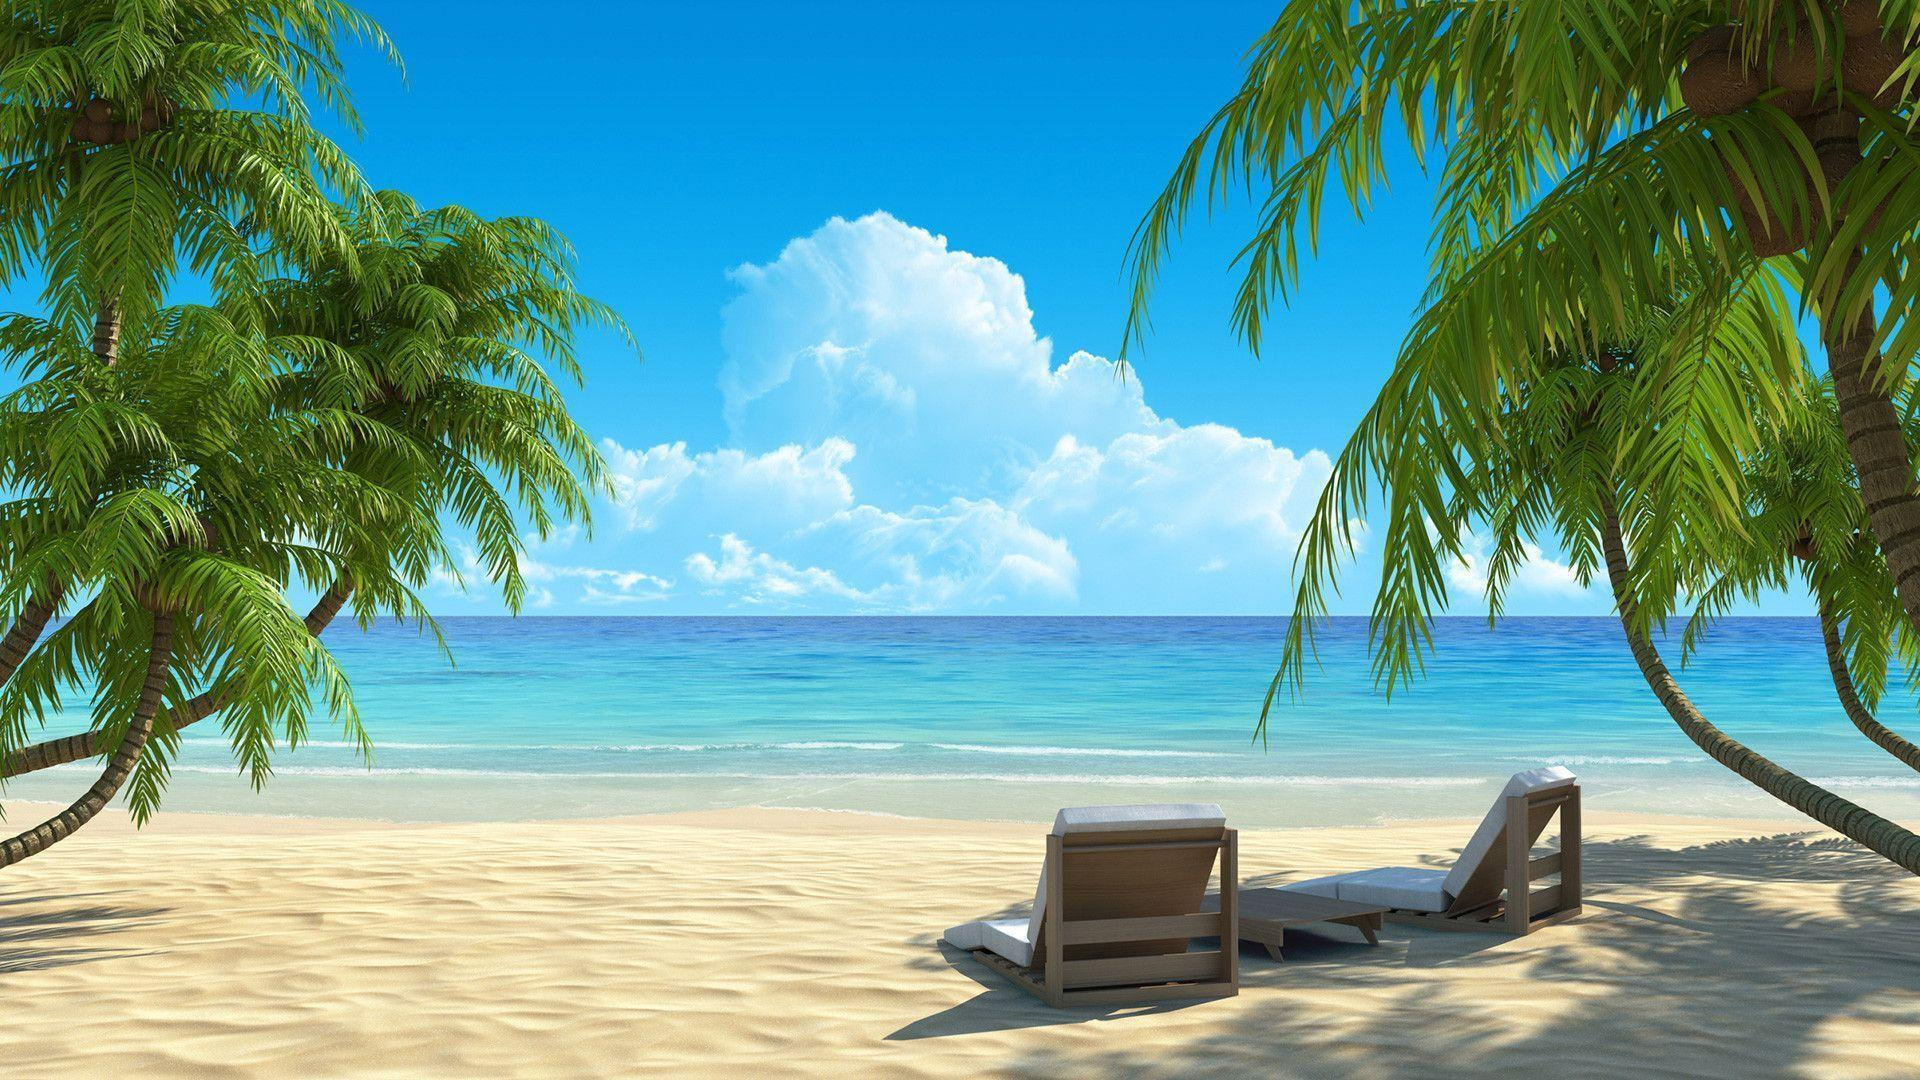 Delightful Wallpapers For U003e Summer Beach Paradise Wallpaper